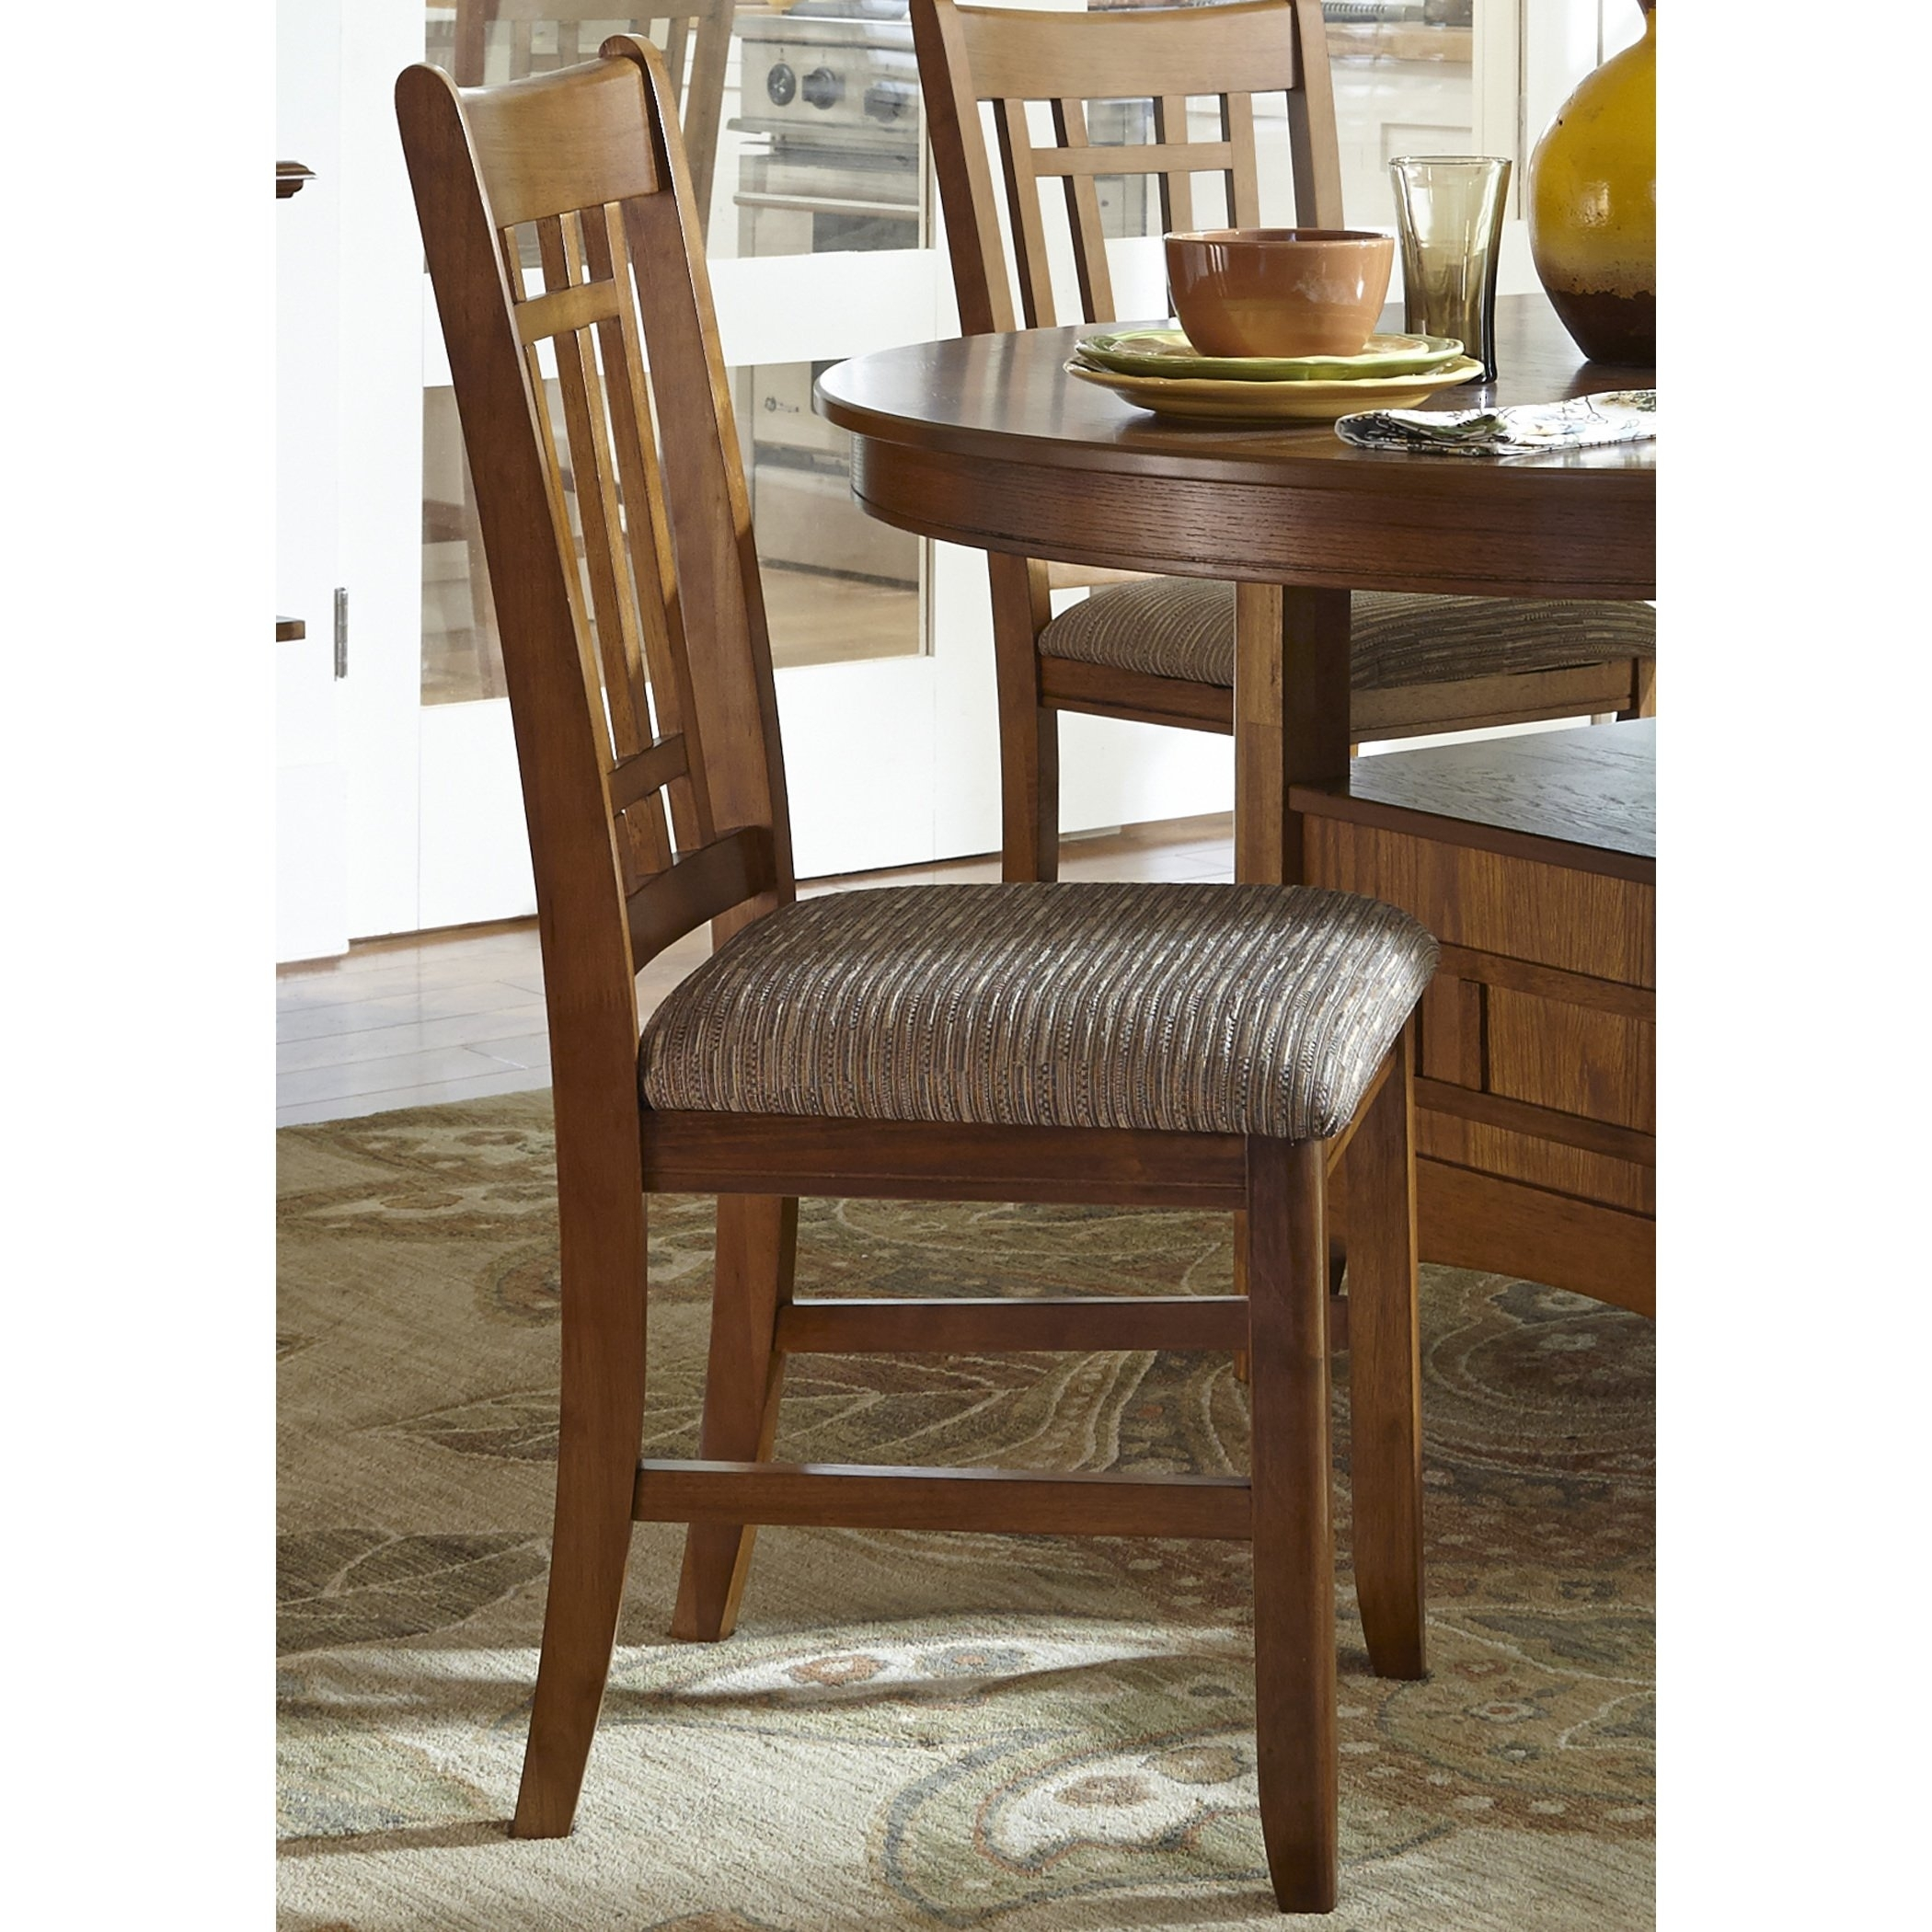 Famous Craftsman Upholstered Side Chairs In Shop Santa Rosa Oak Mission Upholstered Dining Chair – On Sale (View 9 of 20)